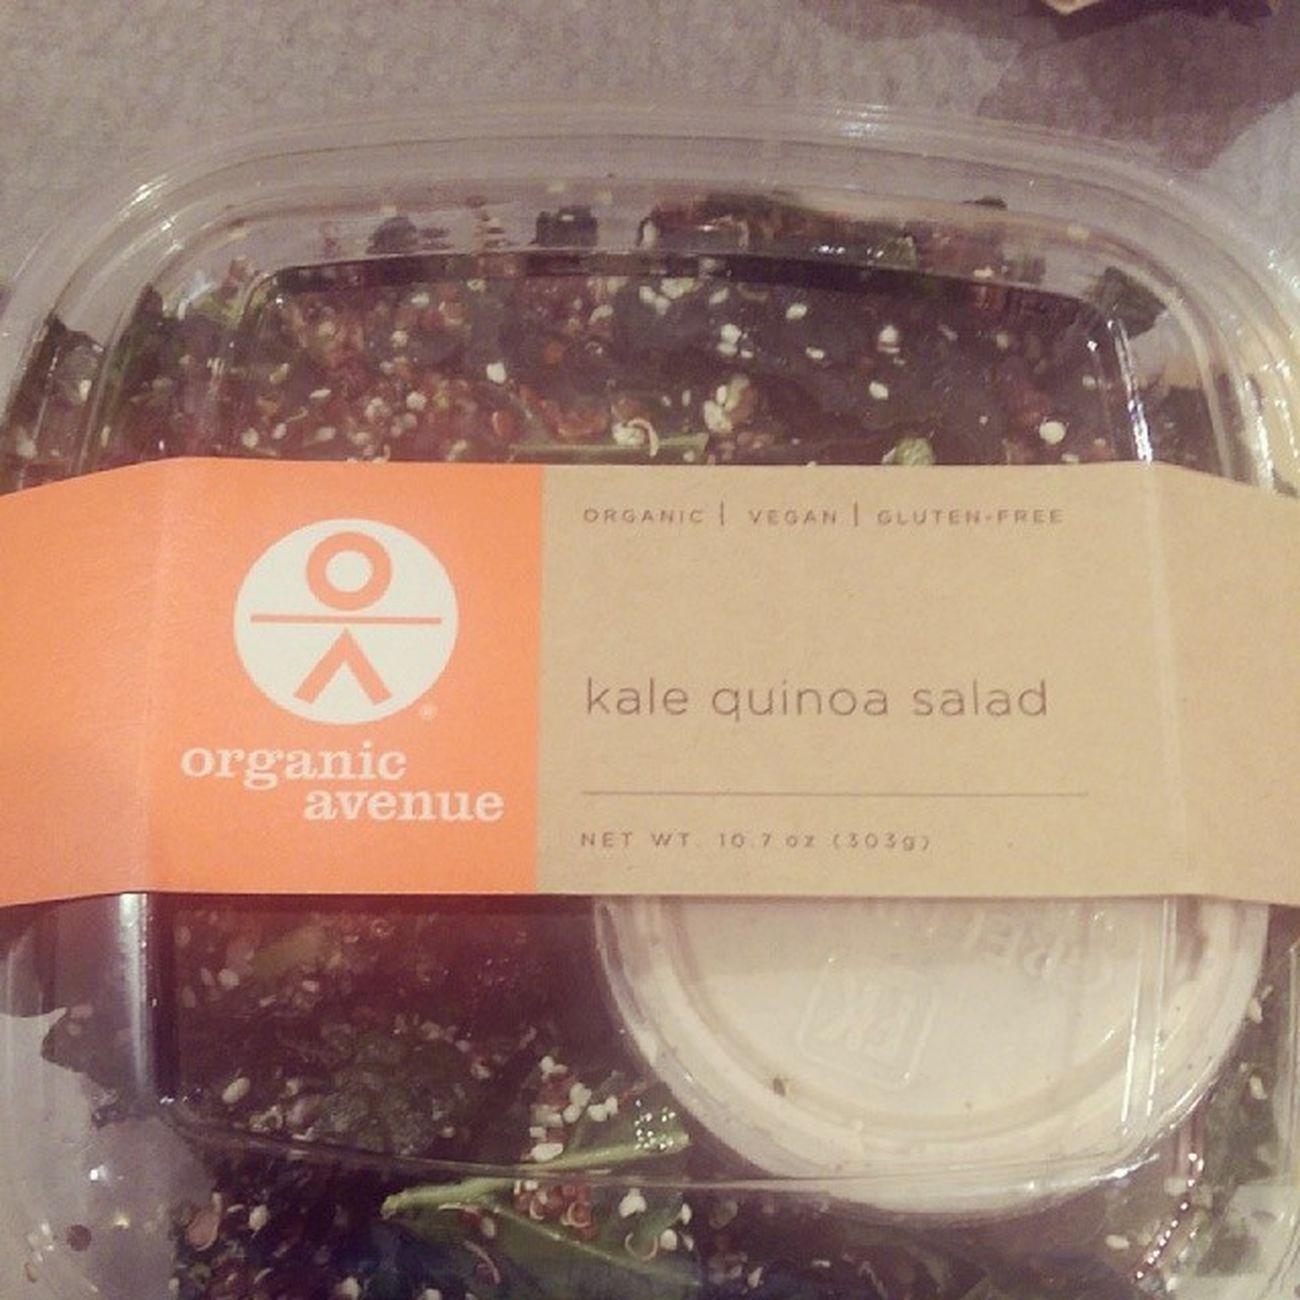 Kalequinoasalad from @organicavenue